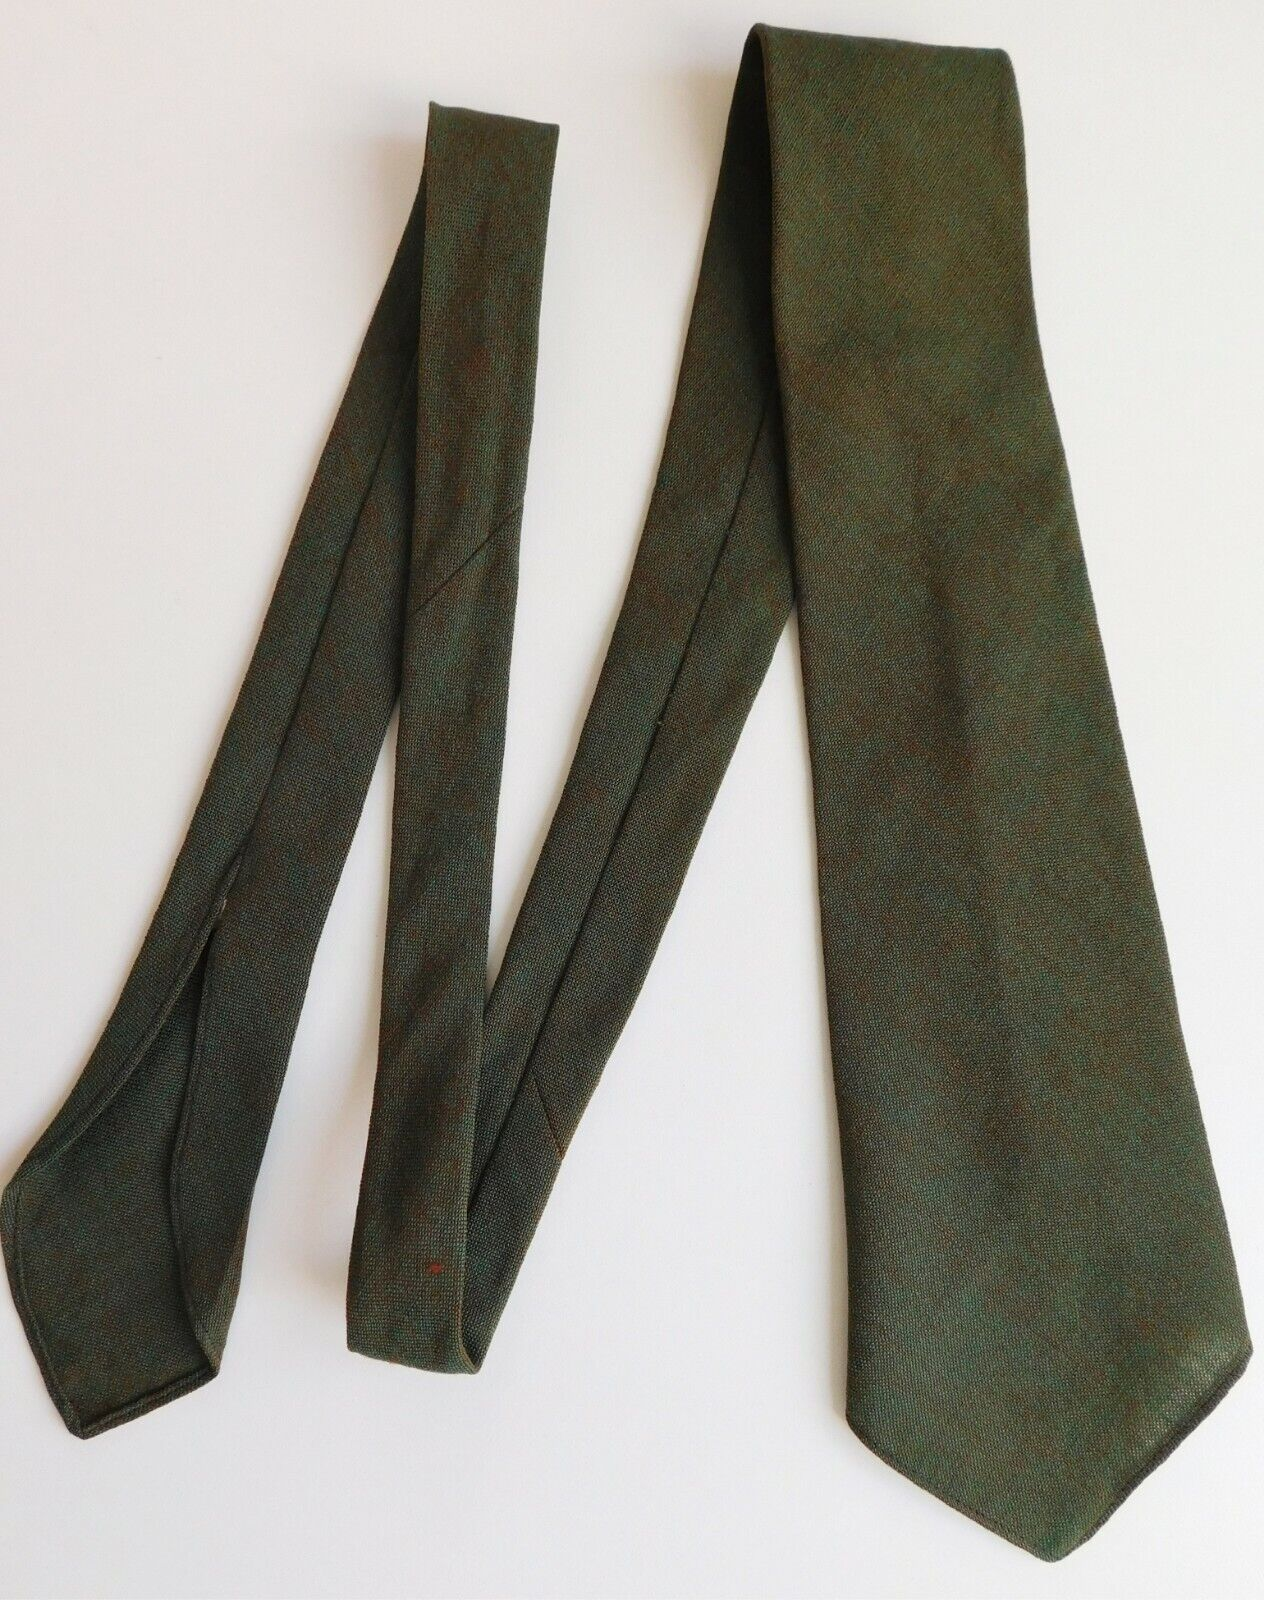 Freemantle vintage green wool tie English made Very good condition 1950s 1960s